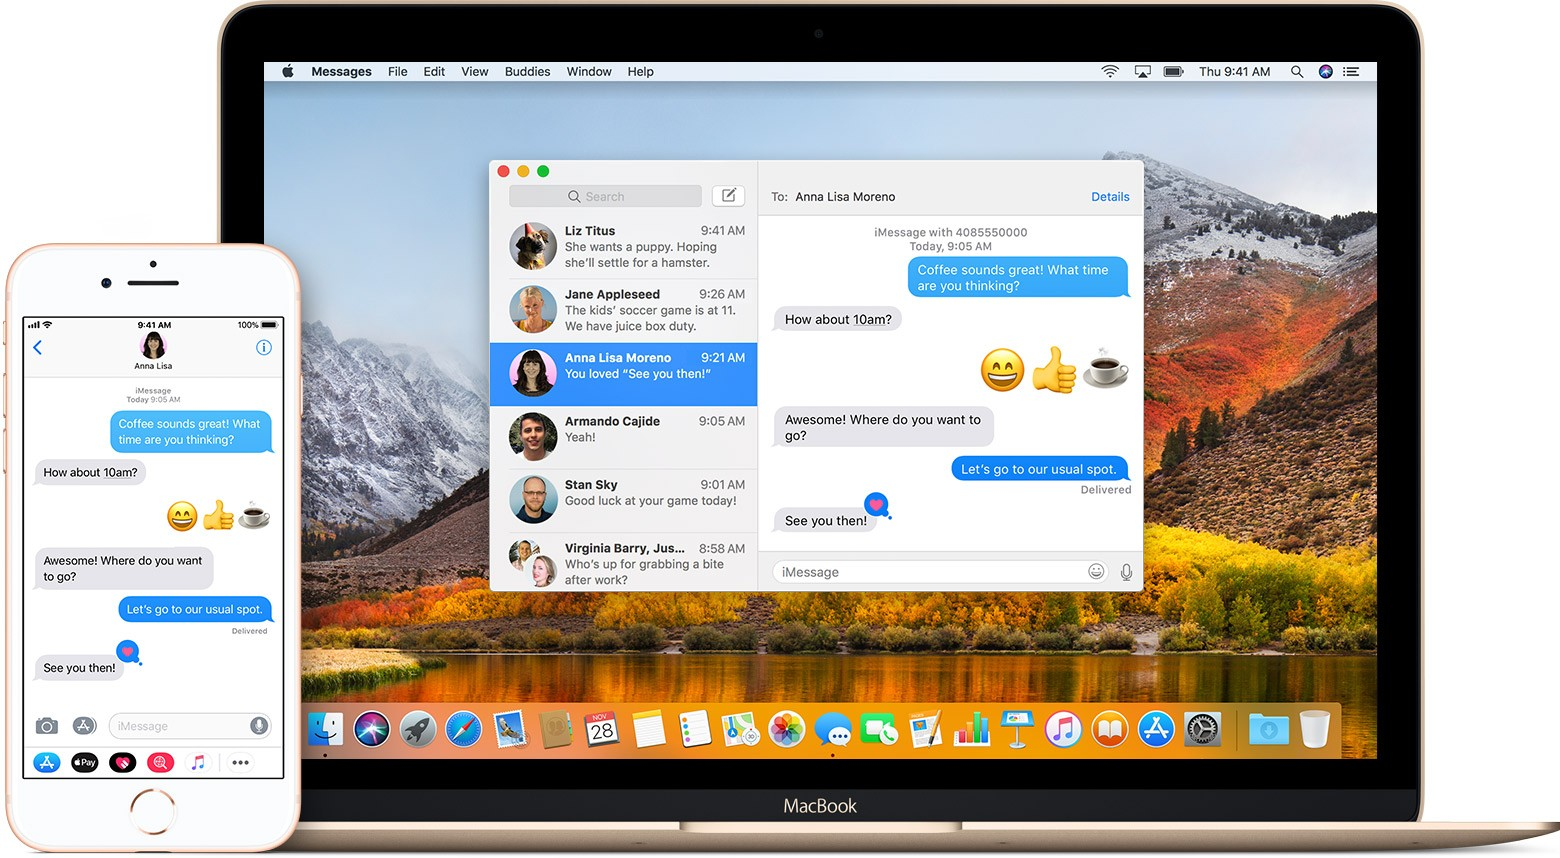 Microsoft Says It Wants to Bring iPhone's iMessage to Windows 10